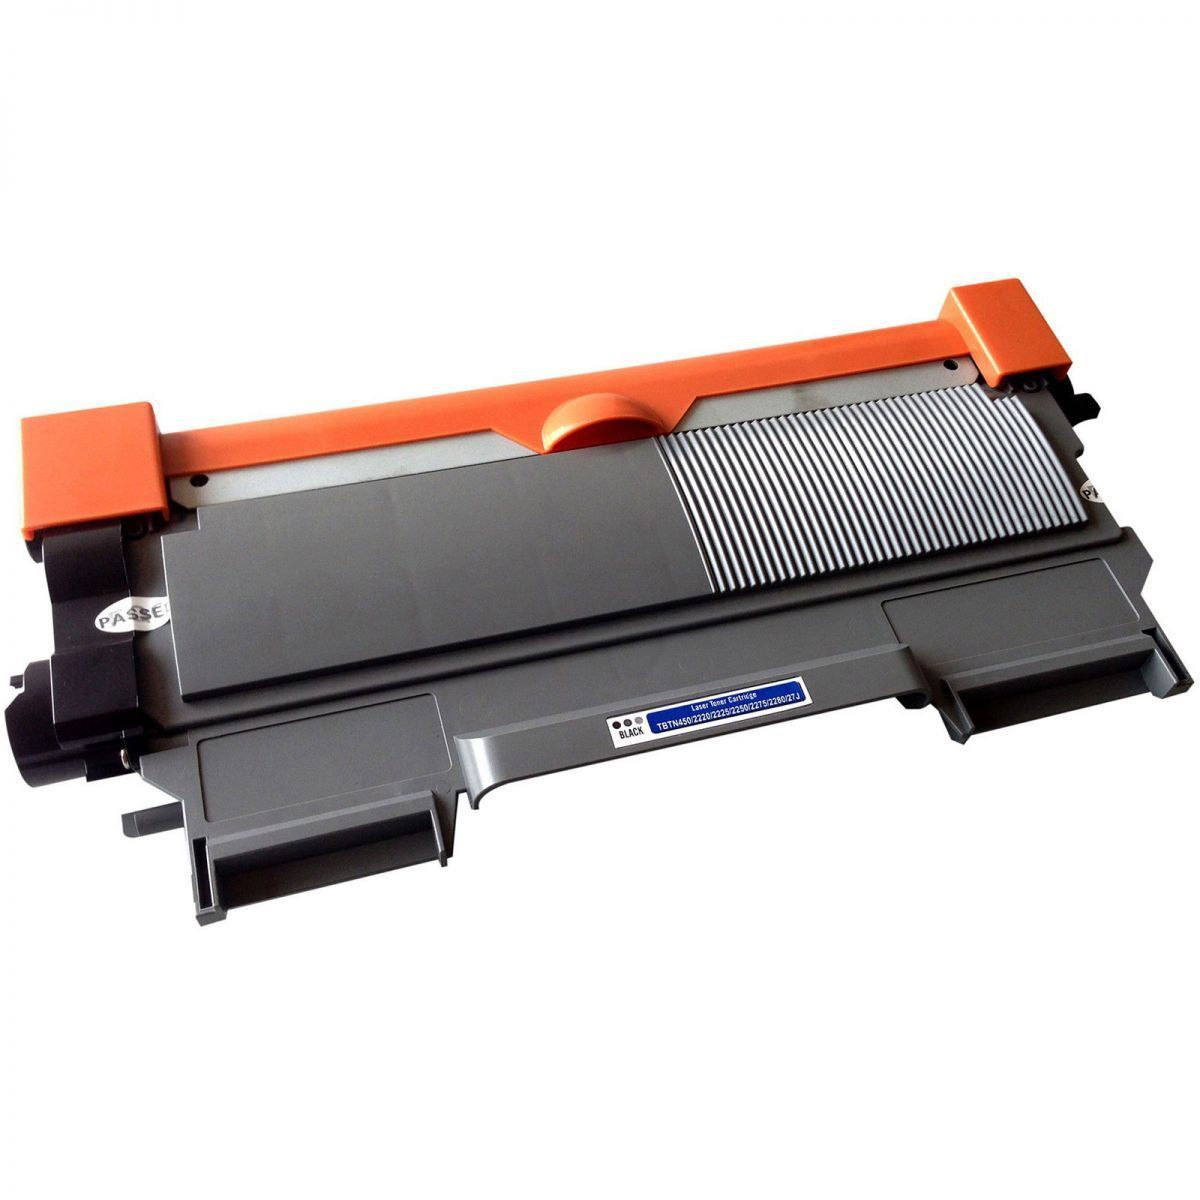 Compatível: Toner TN450 TN420 TN410 para Brother HL-2130 HL-2220 DCP-7055 7065 MFC-7360 7460 7860 / Preto / 2.600